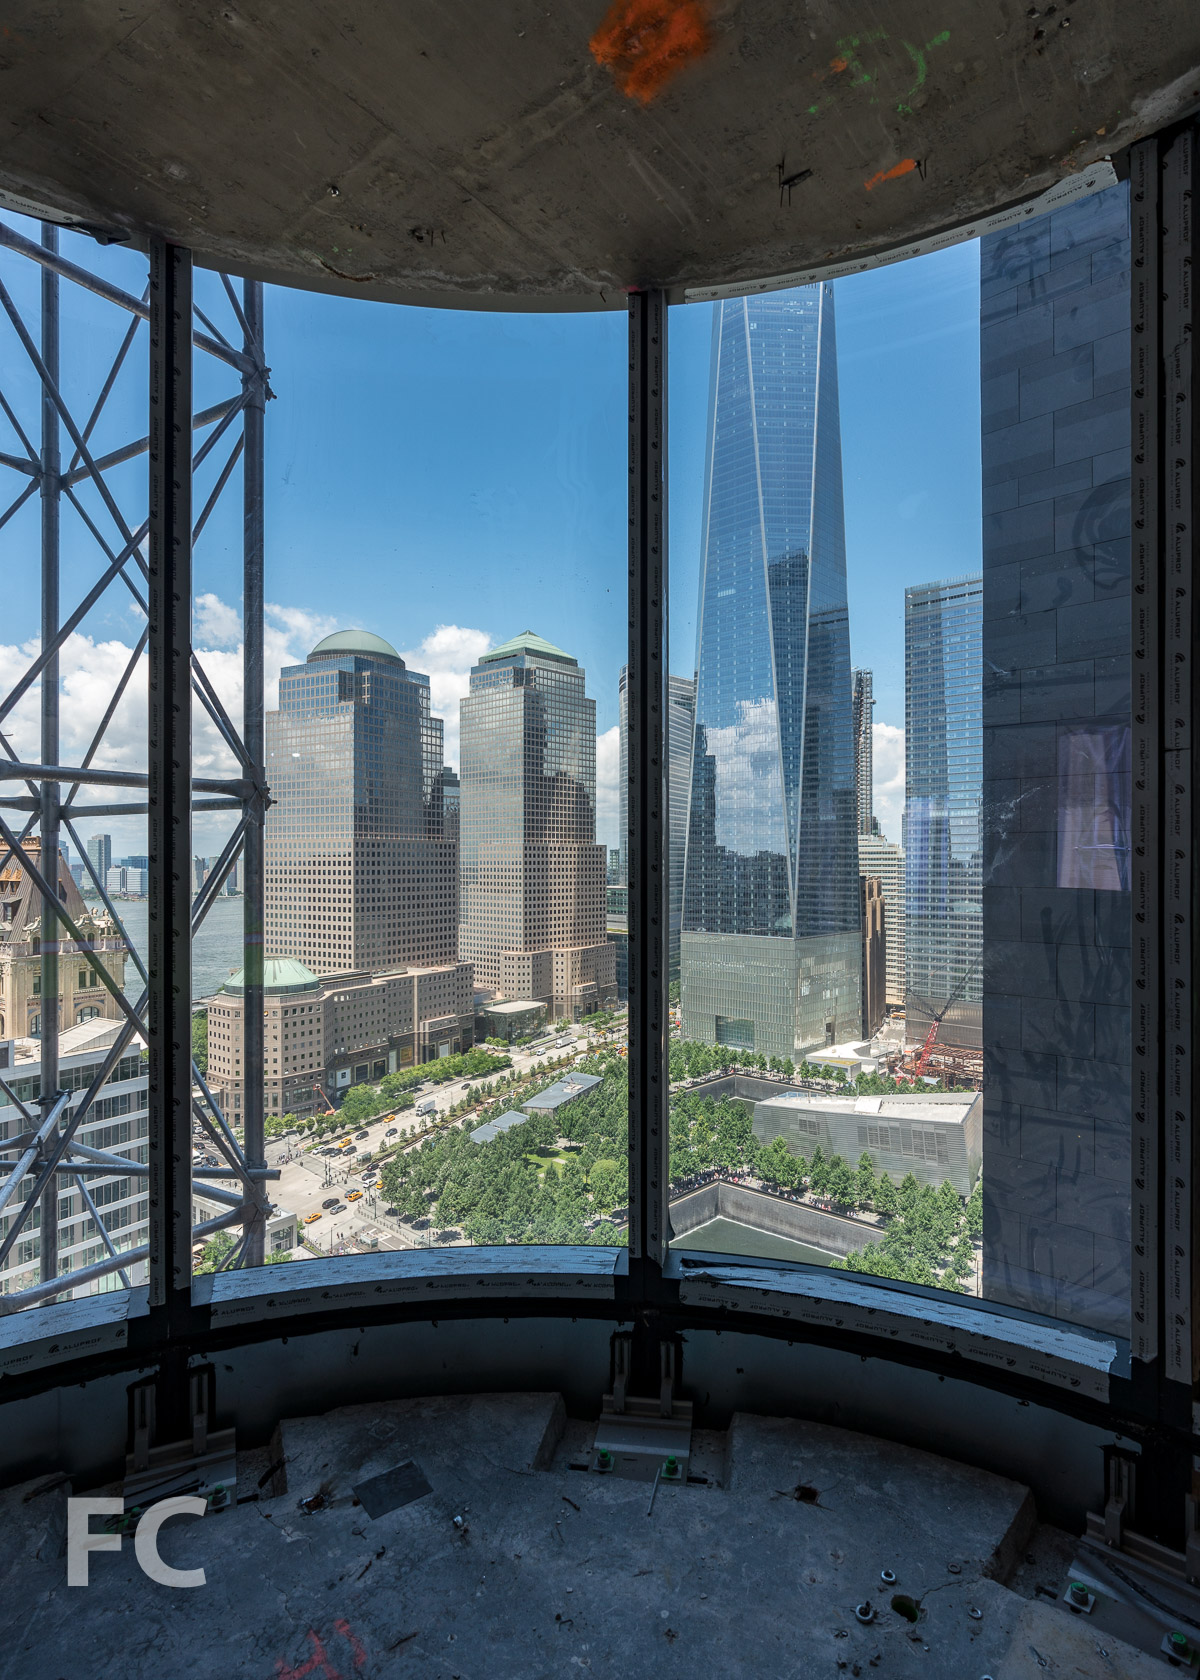 Looking towards the World Trade Center site from the curtain wall installed on the 25th floor.